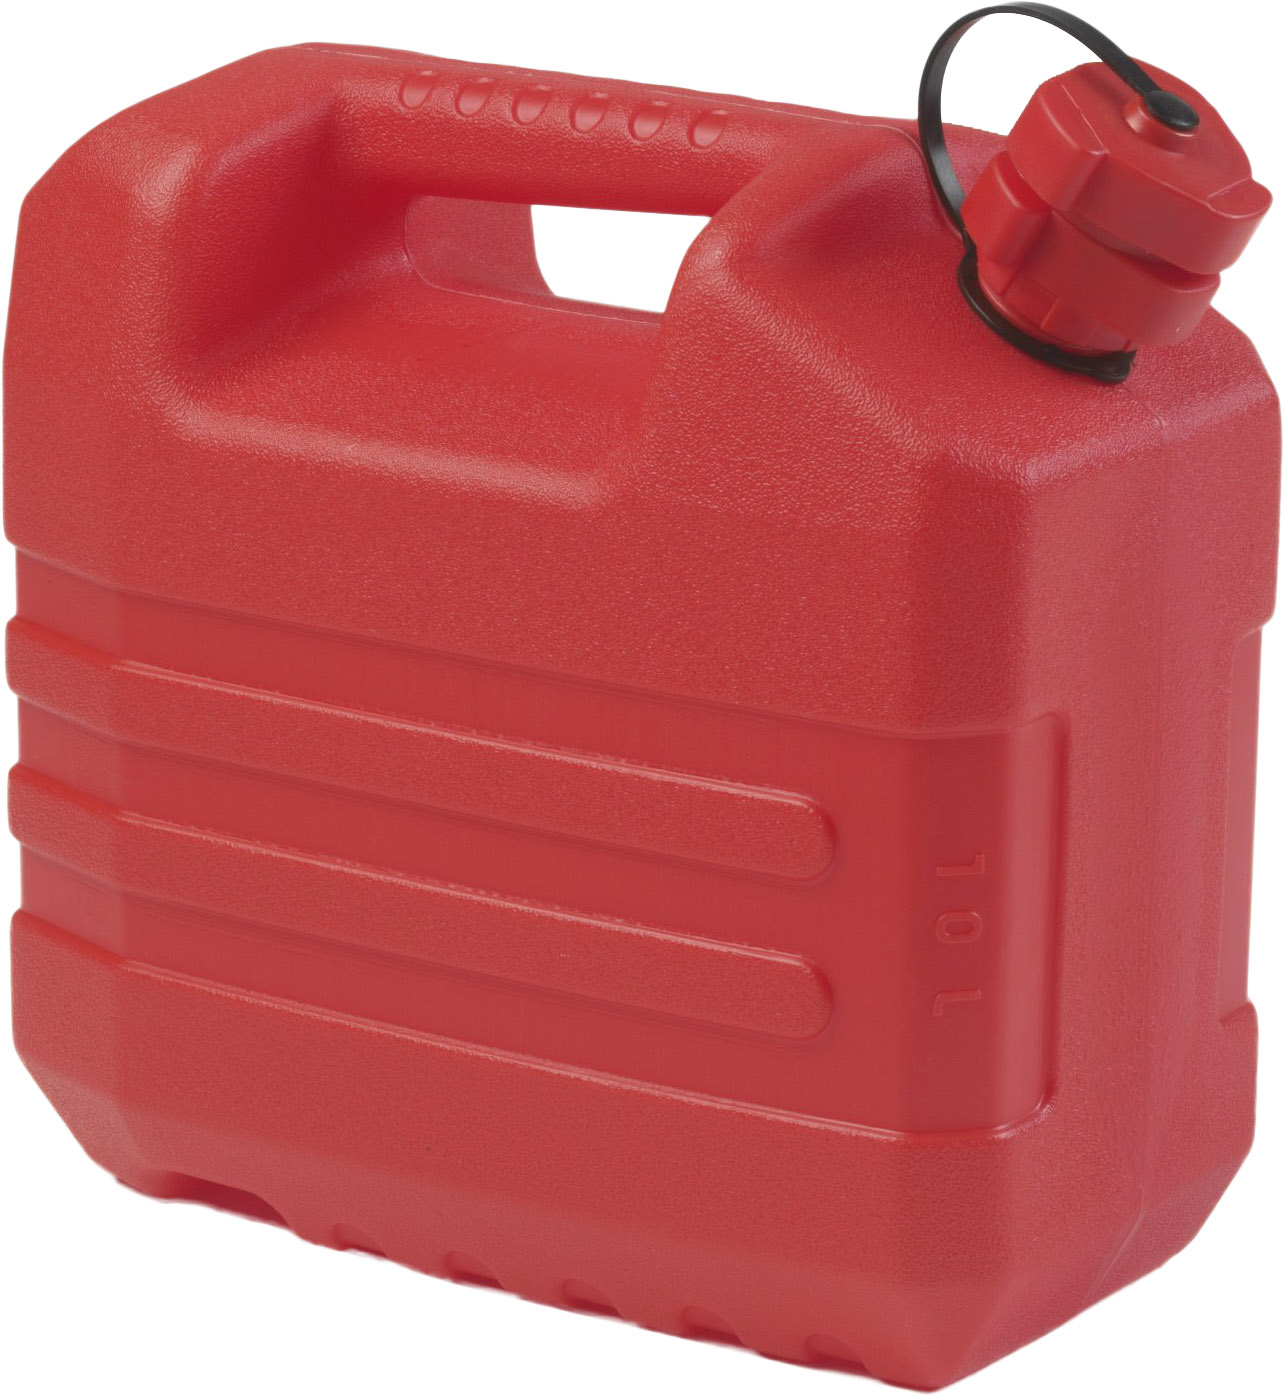 JERRYCAN 10L RED 321X178X301